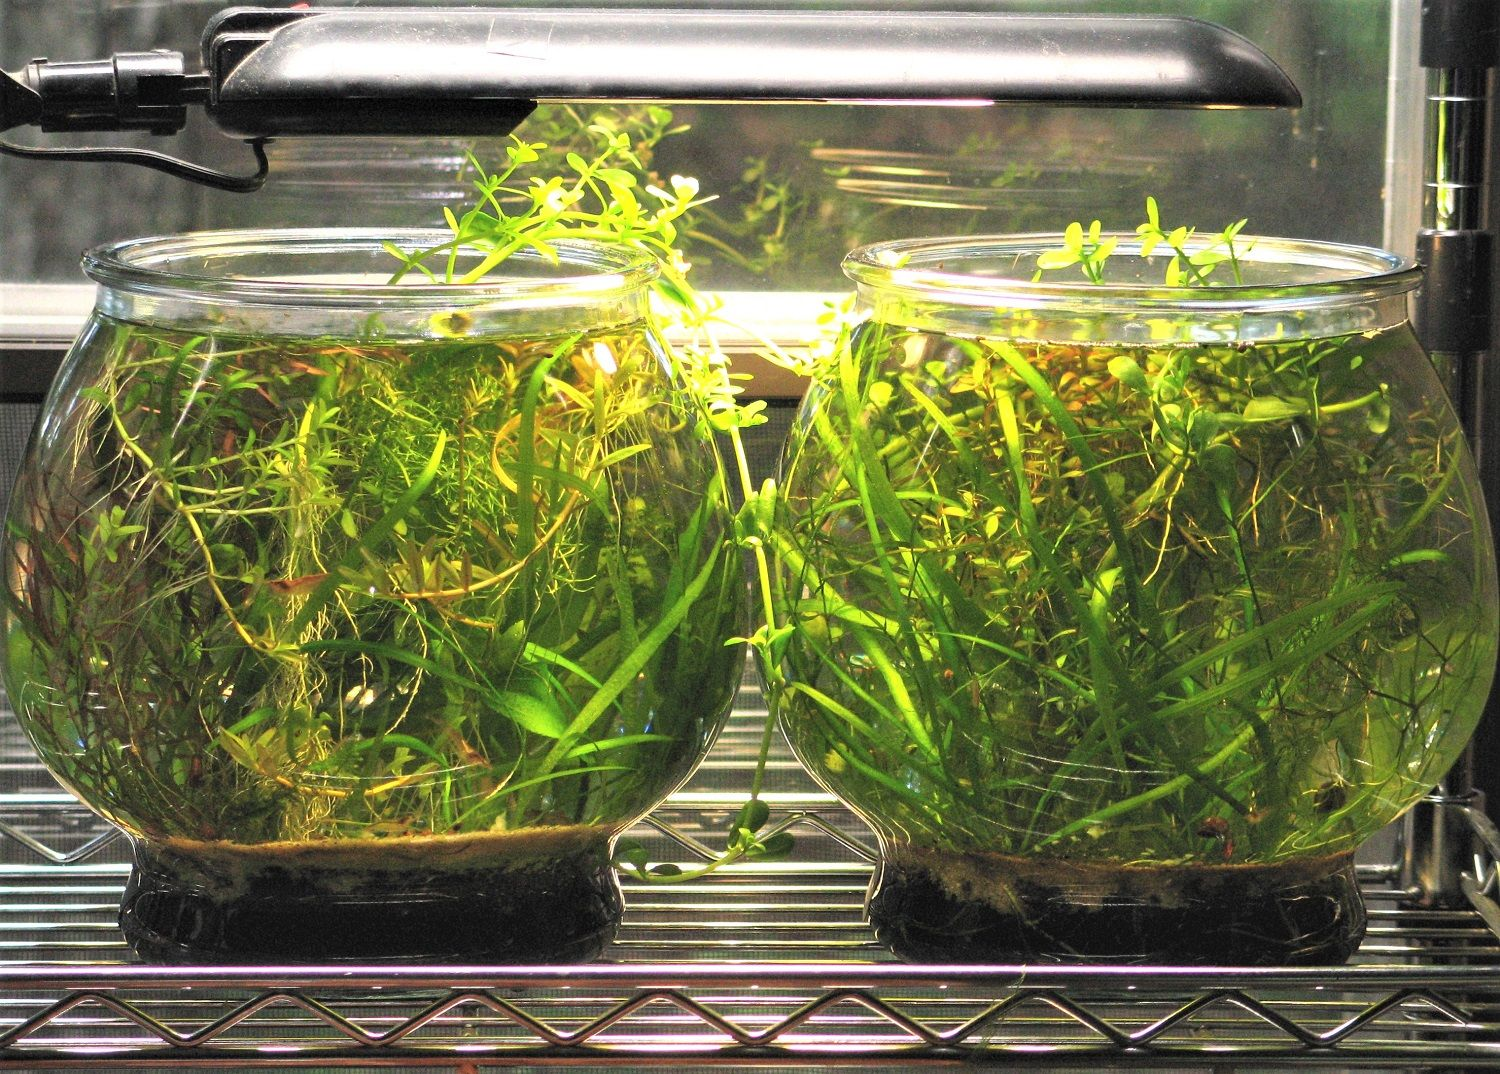 Article On Setting Up Small Planted Tanks For Pet Shrimp Pet Shrimp Shrimp Tank Planted Aquarium